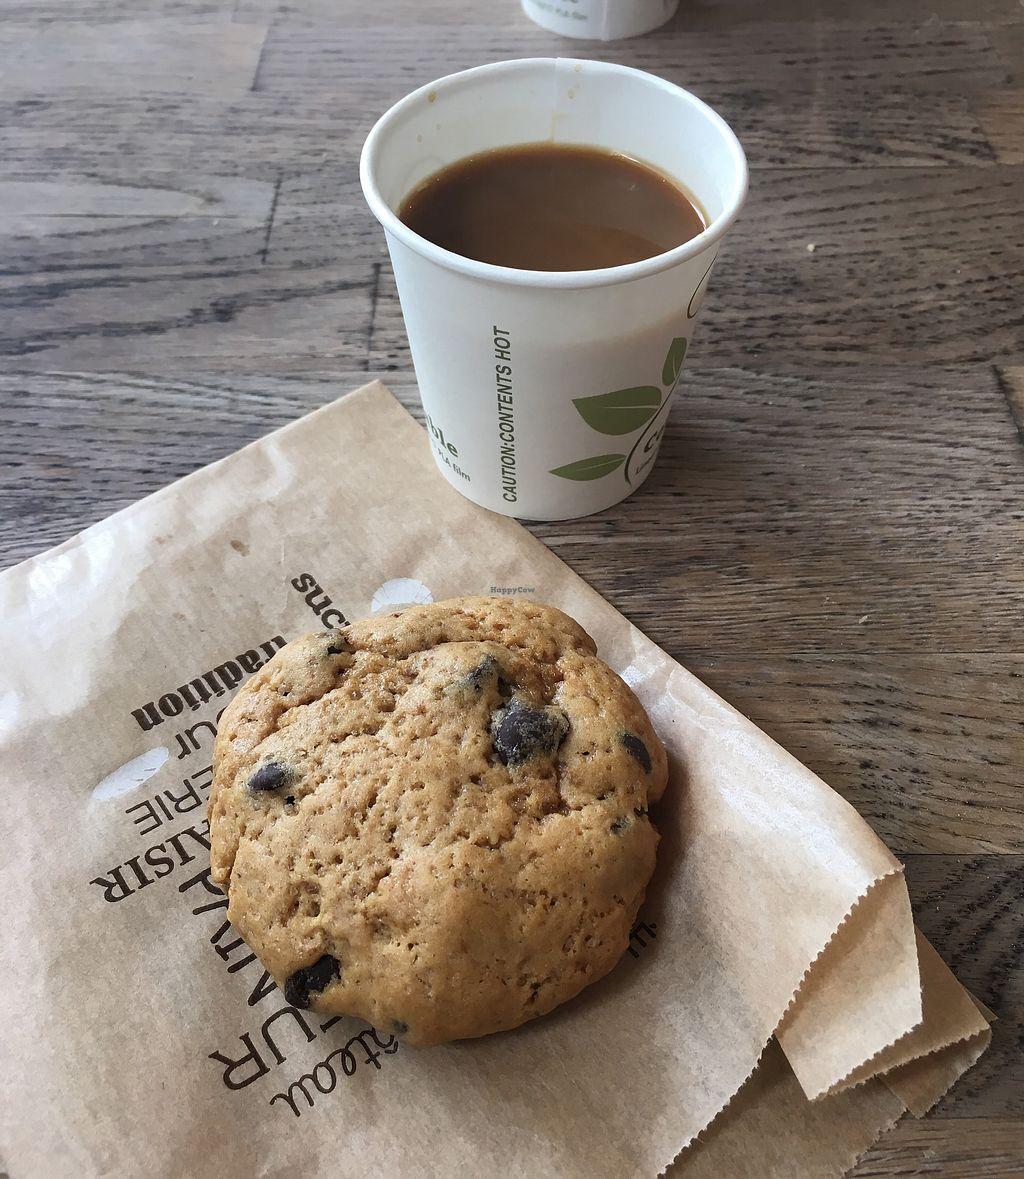 "Photo of Tree House  by <a href=""/members/profile/Imixle"">Imixle</a> <br/>Vegan cookie and coffee  <br/> August 29, 2017  - <a href='/contact/abuse/image/93685/298517'>Report</a>"